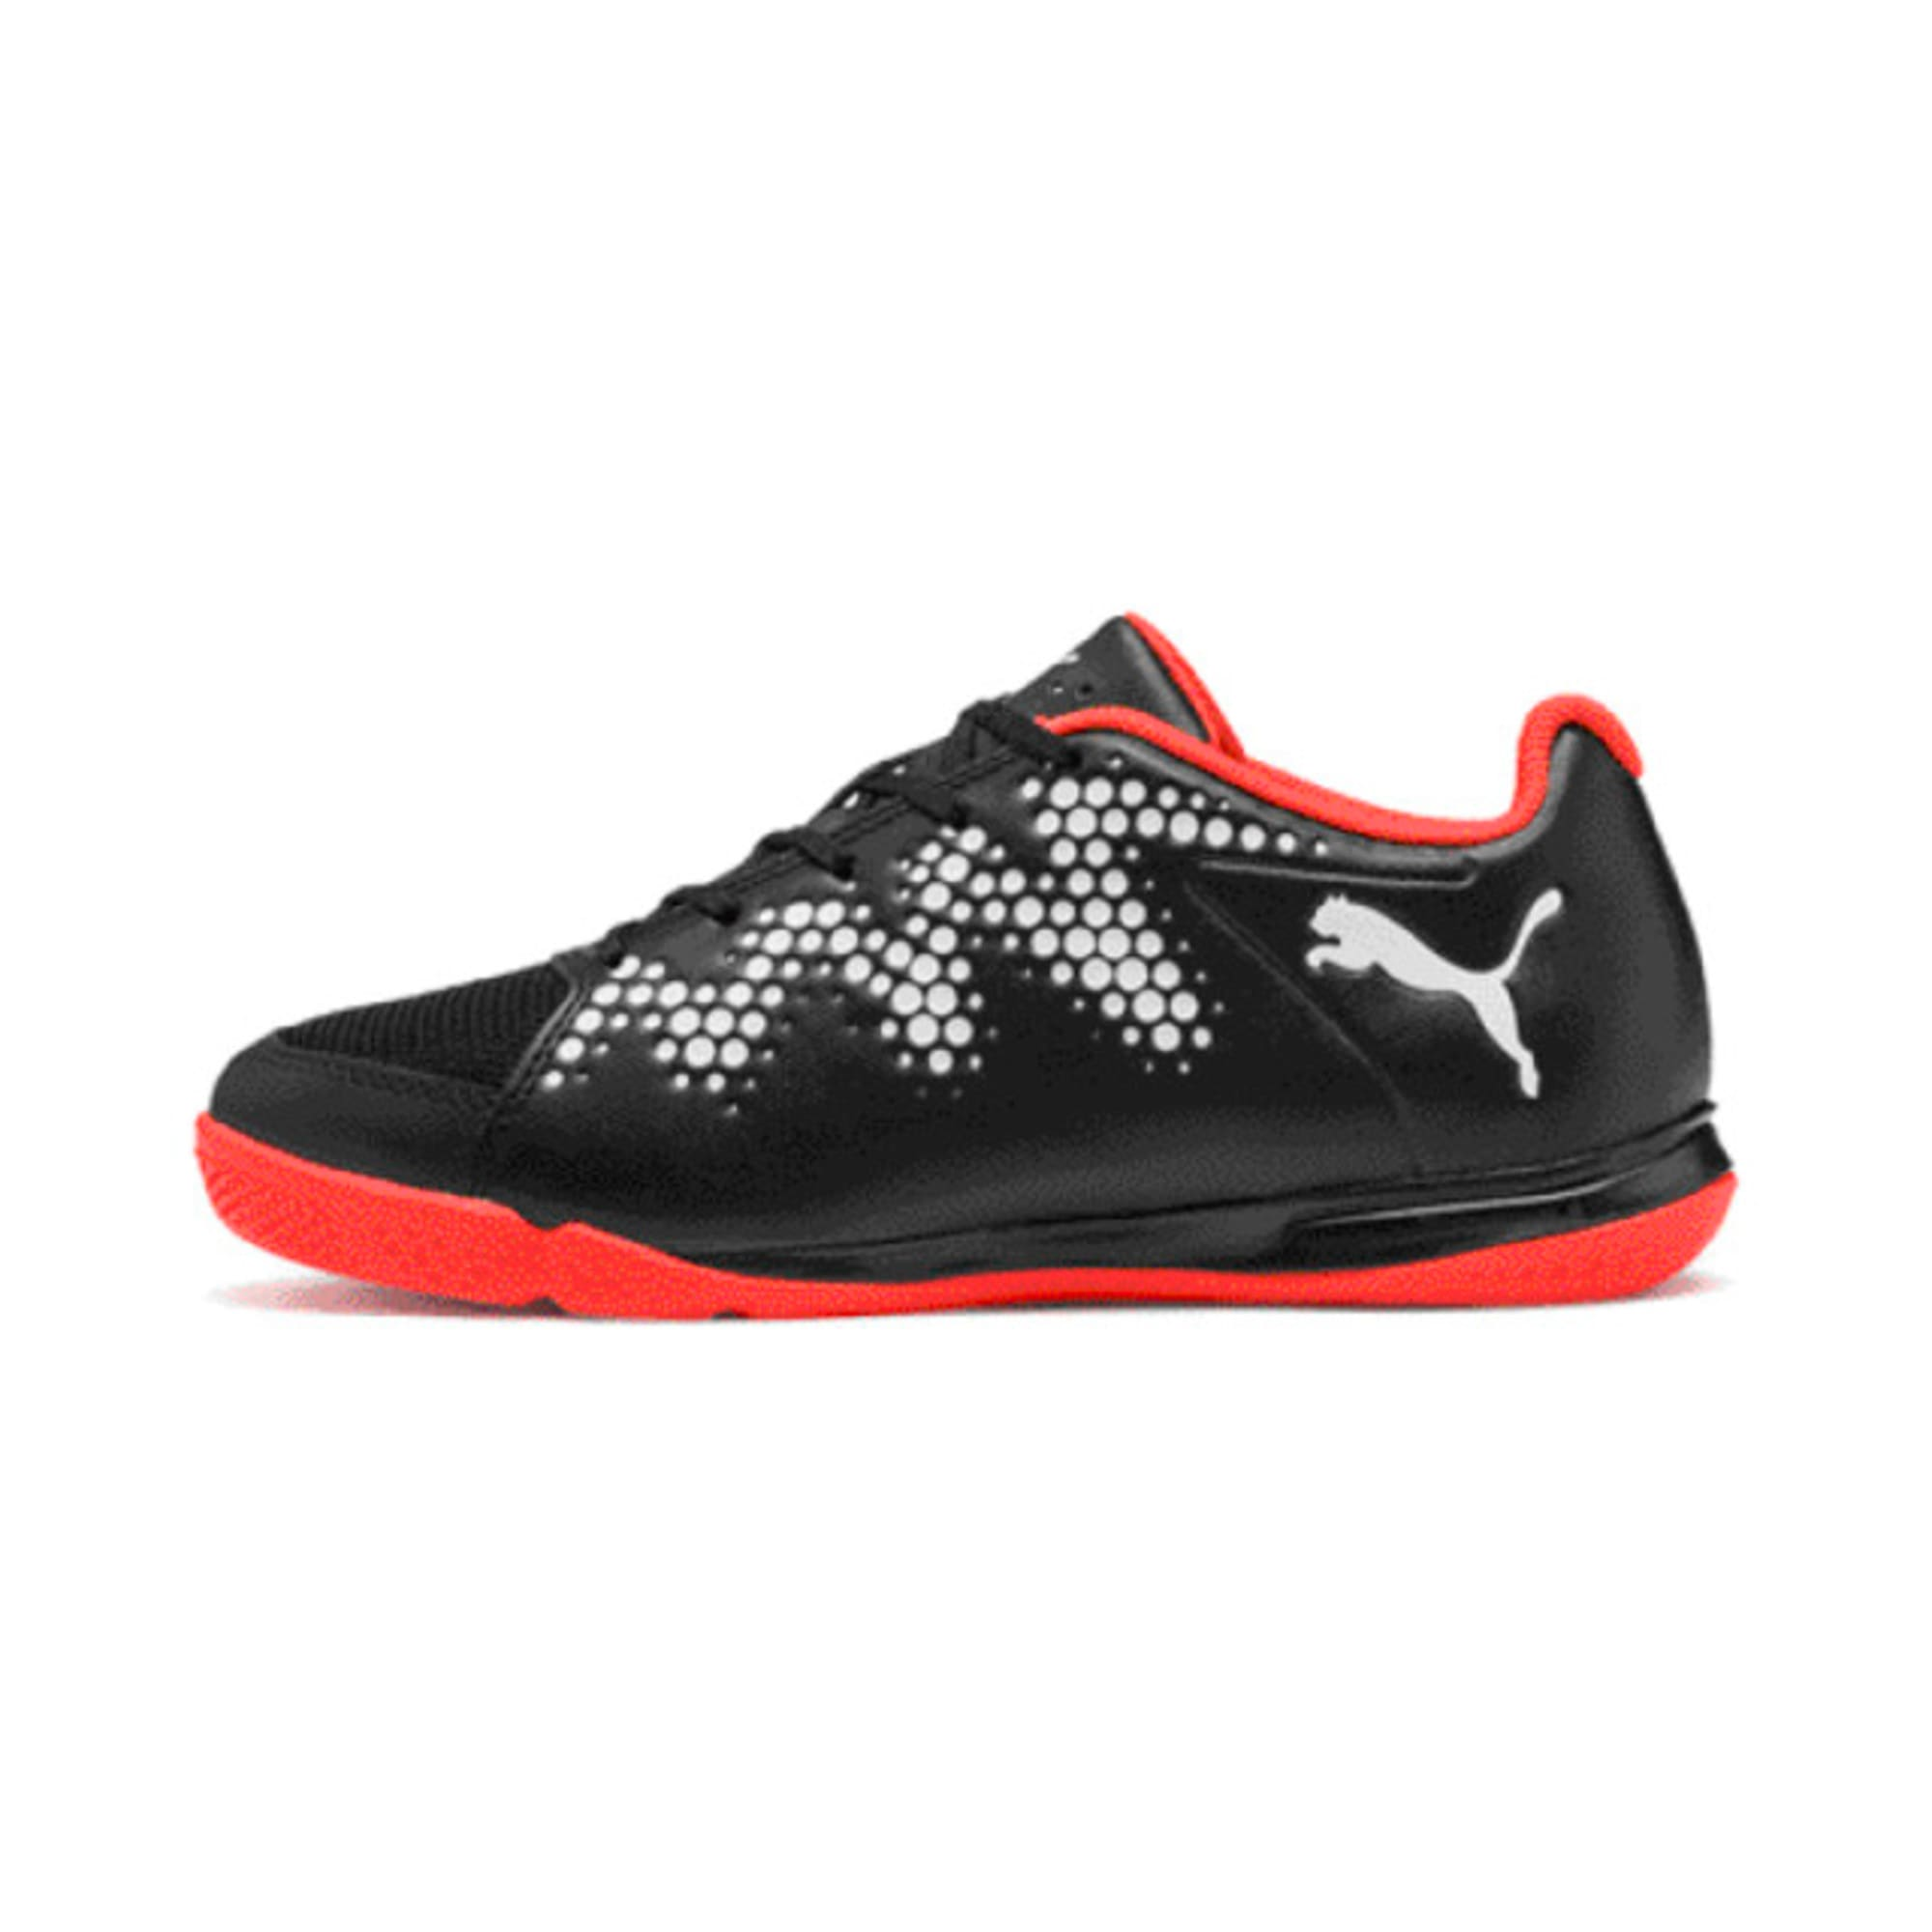 Thumbnail 1 of Sharp XT 2 Youth Trainers, Black-Puma White-Nrgy Red, medium-IND